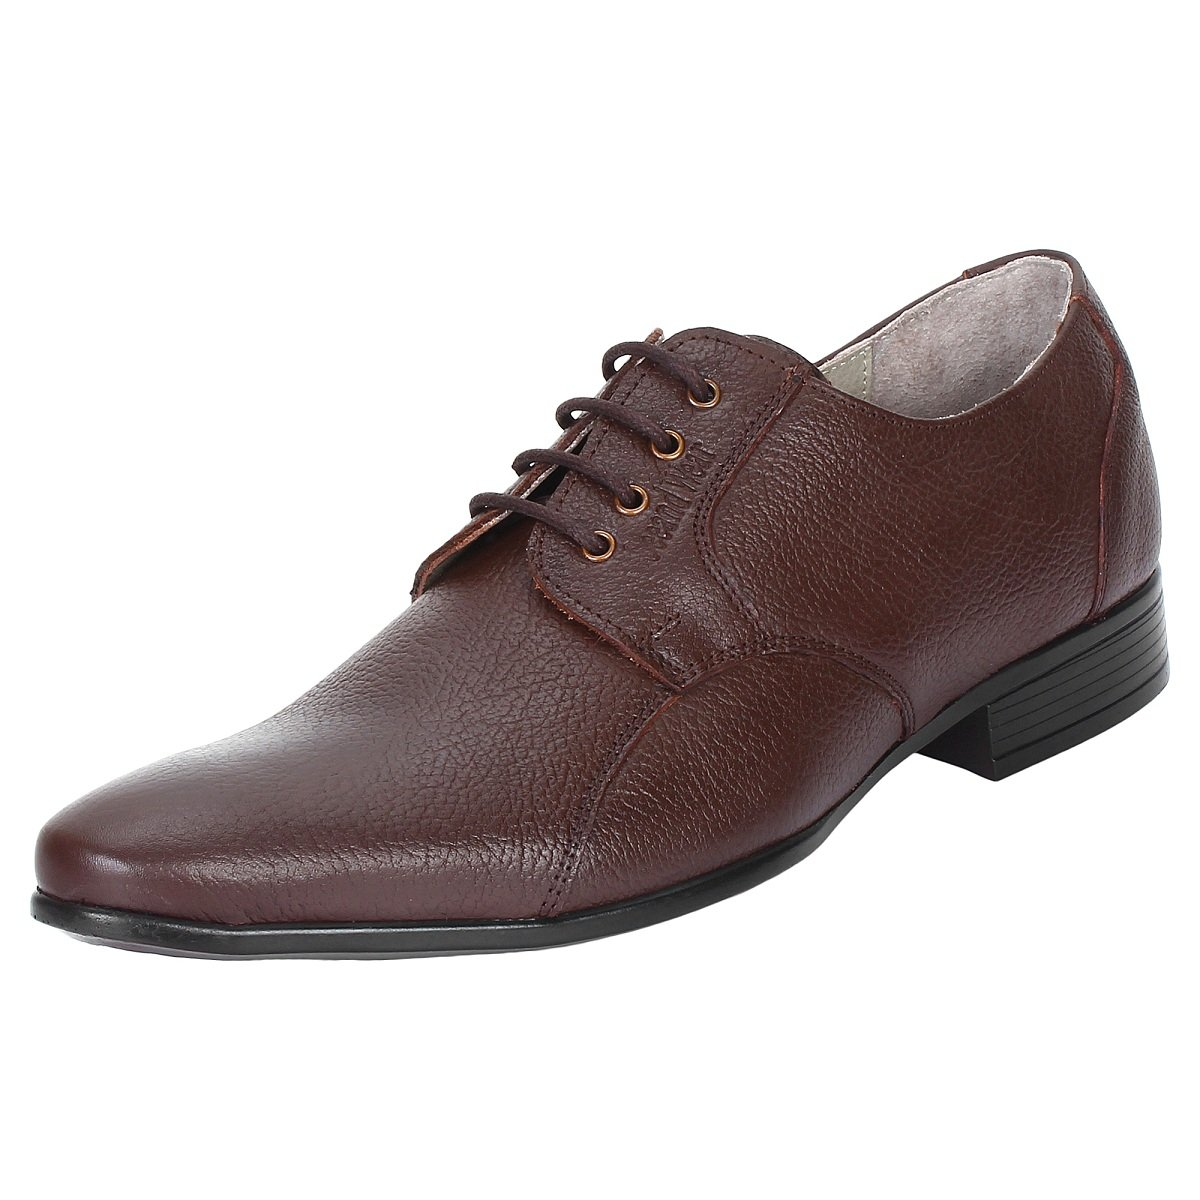 SeeandWear Stylish Shoes for Men -Minor Defect - SeeandWear